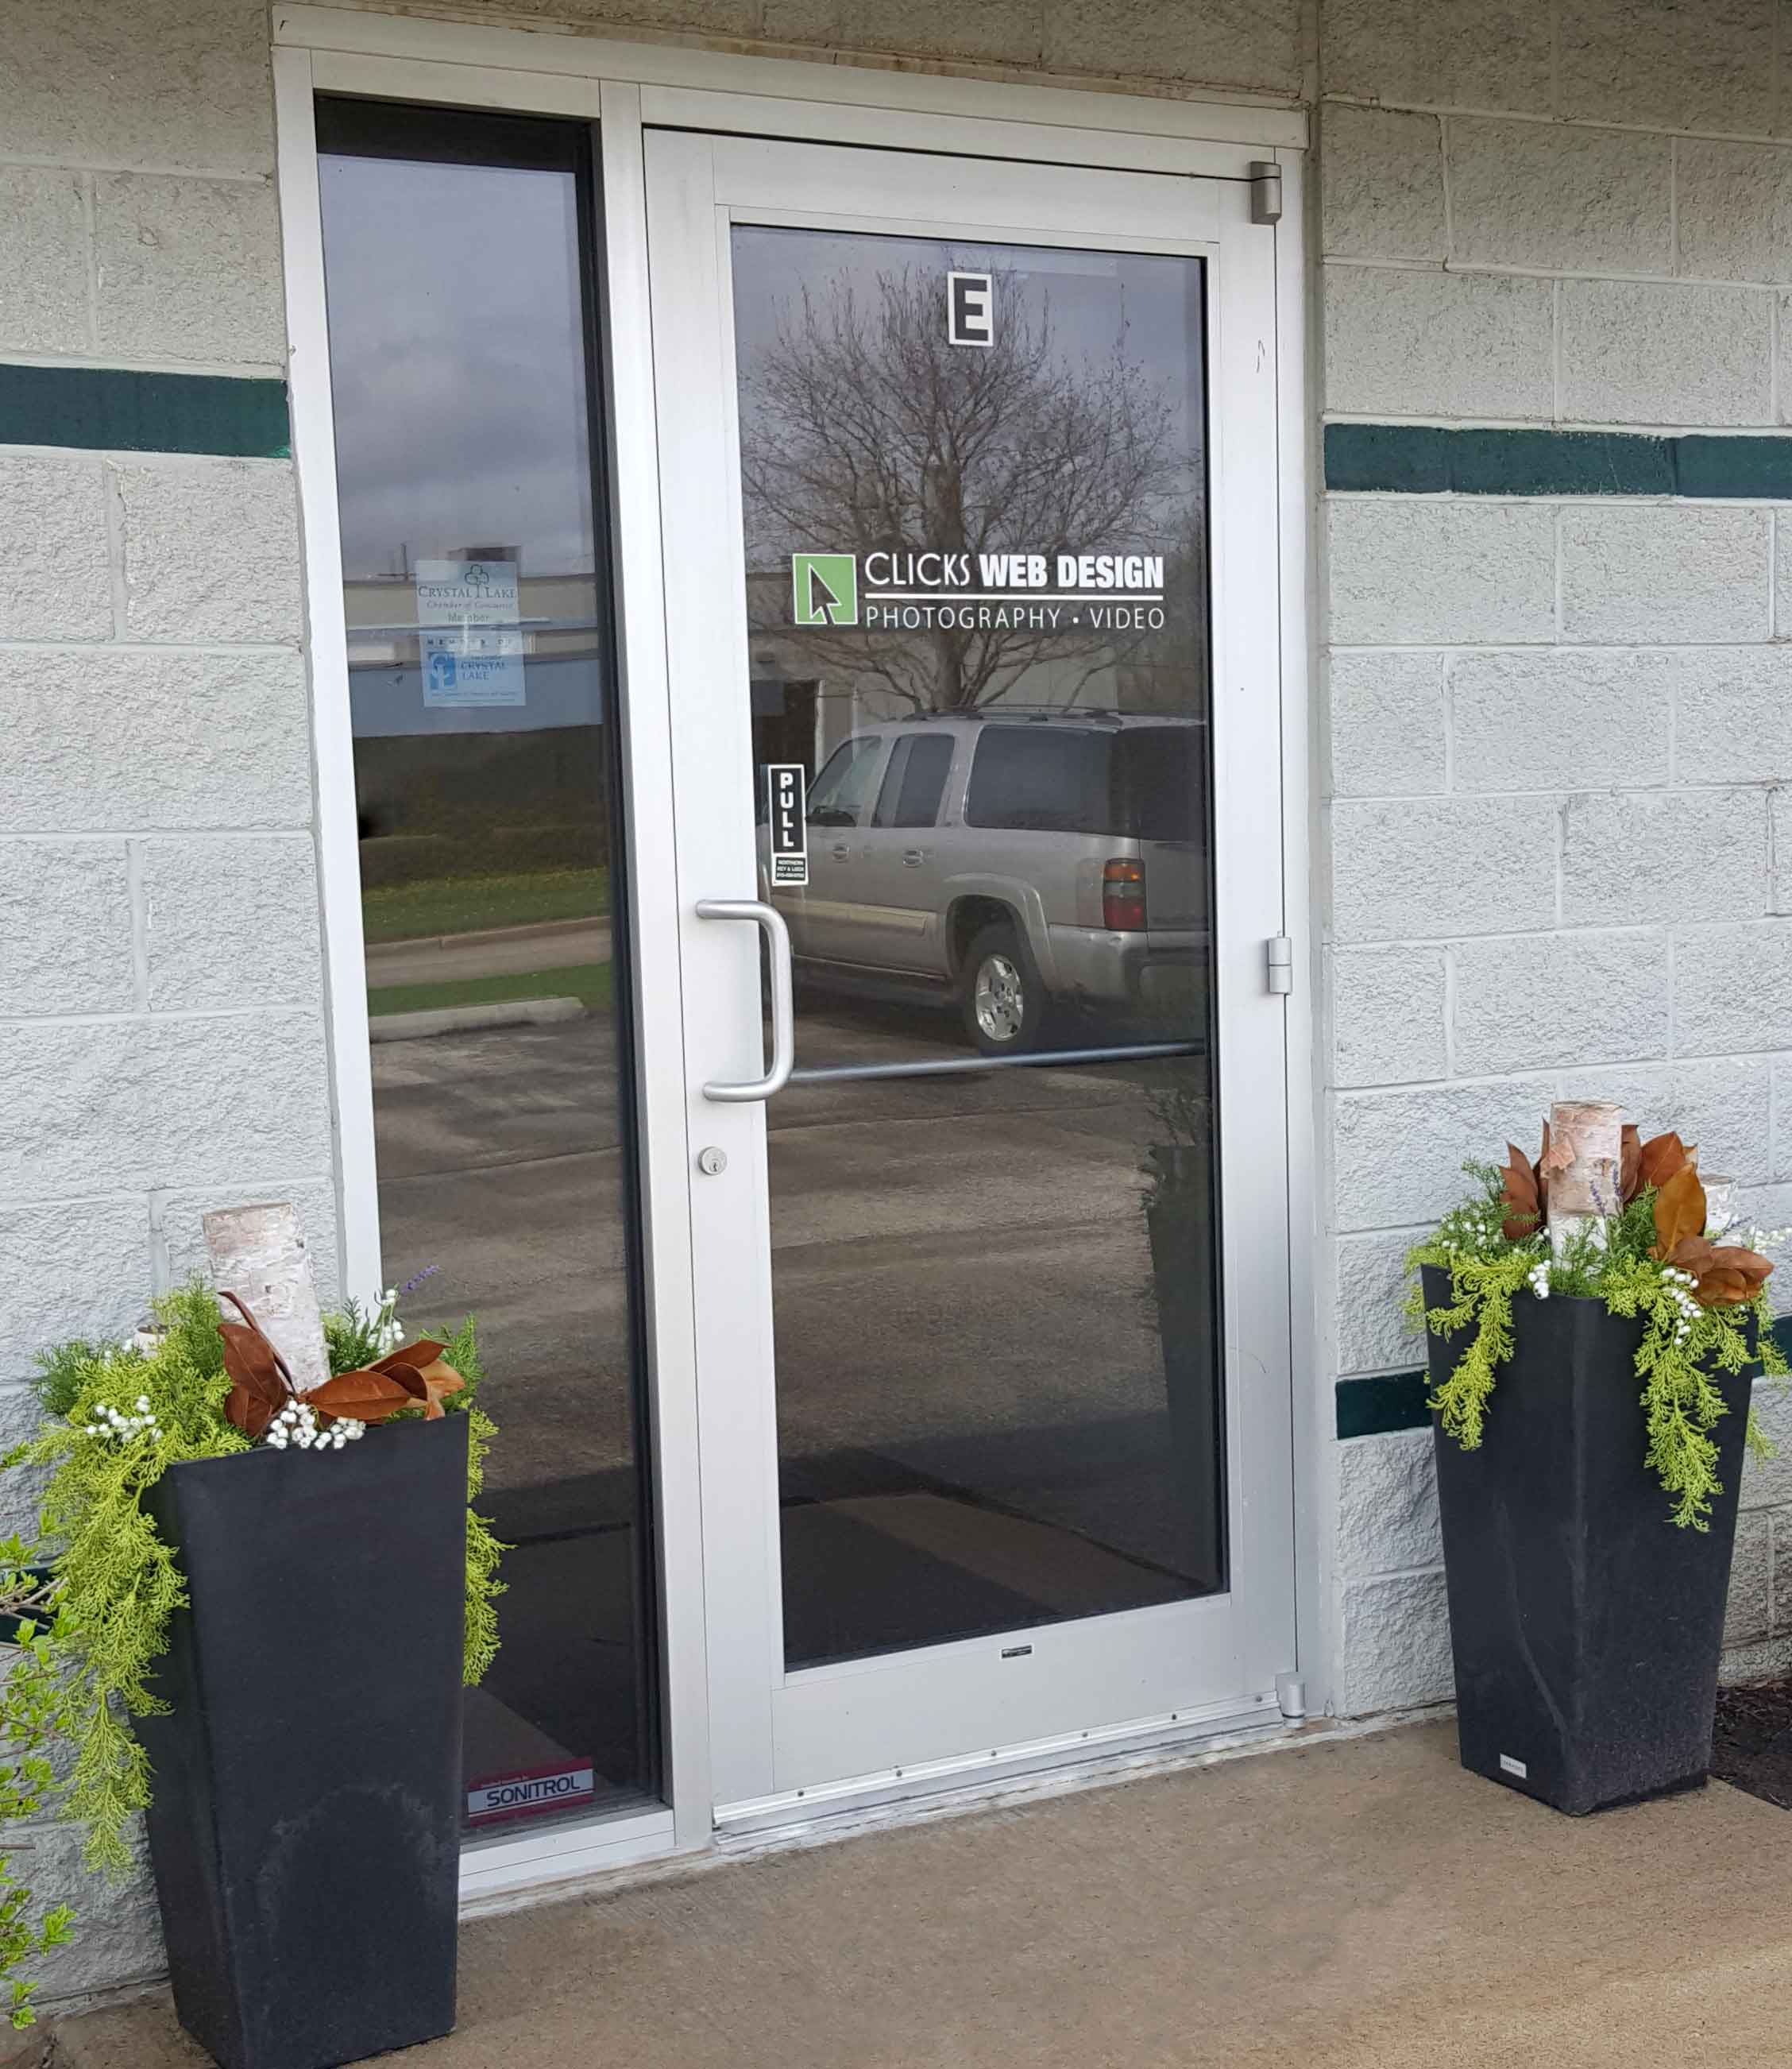 Image of Clicks Web Design's front entrance. Contact us today!